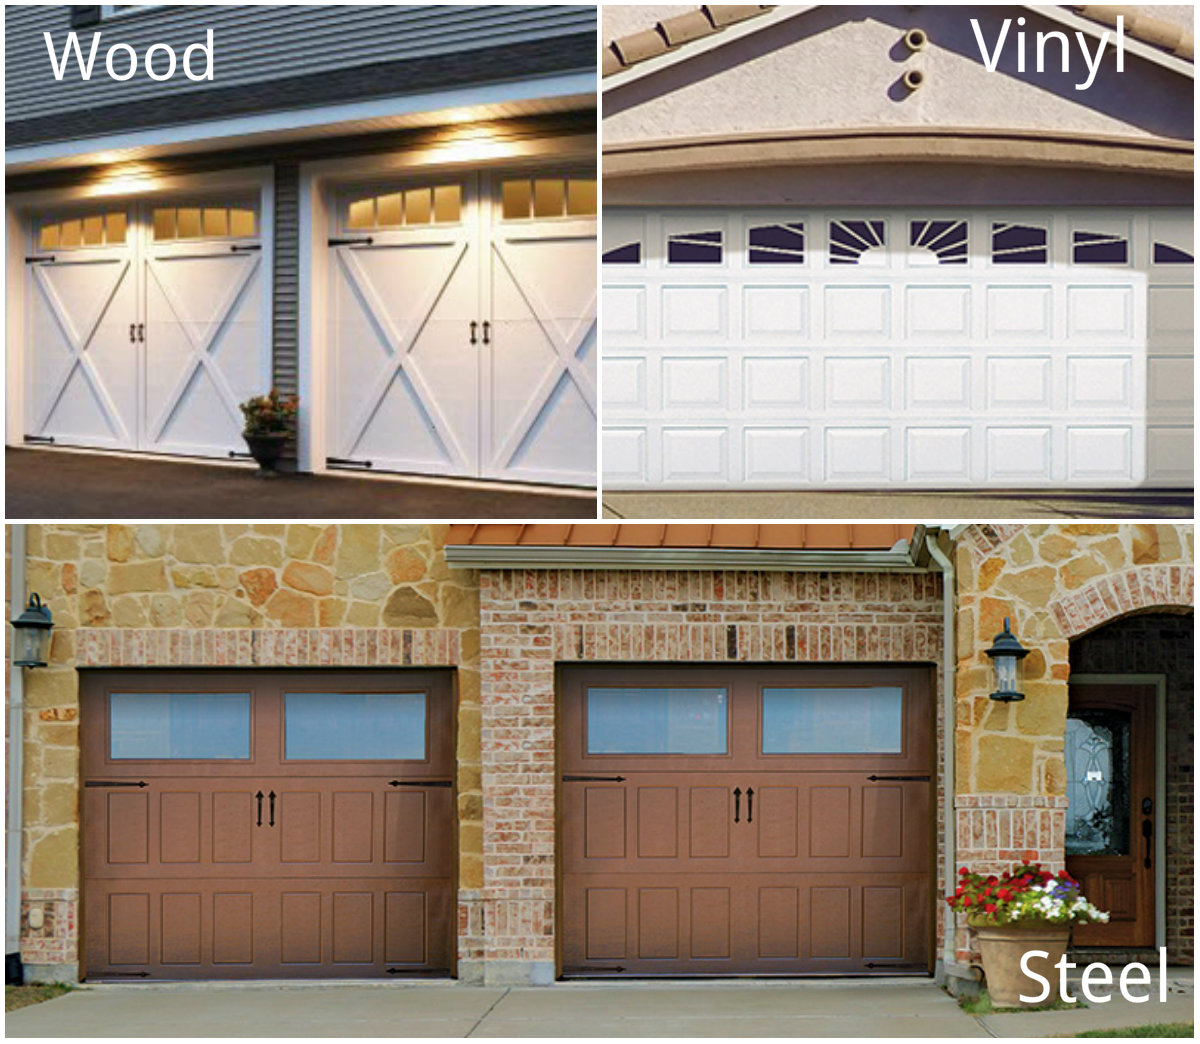 How to Prepare For Your Garage Door & Opener Service Call; single car wide door vs. single car wide door; wood, vinyl and steel garage doors.